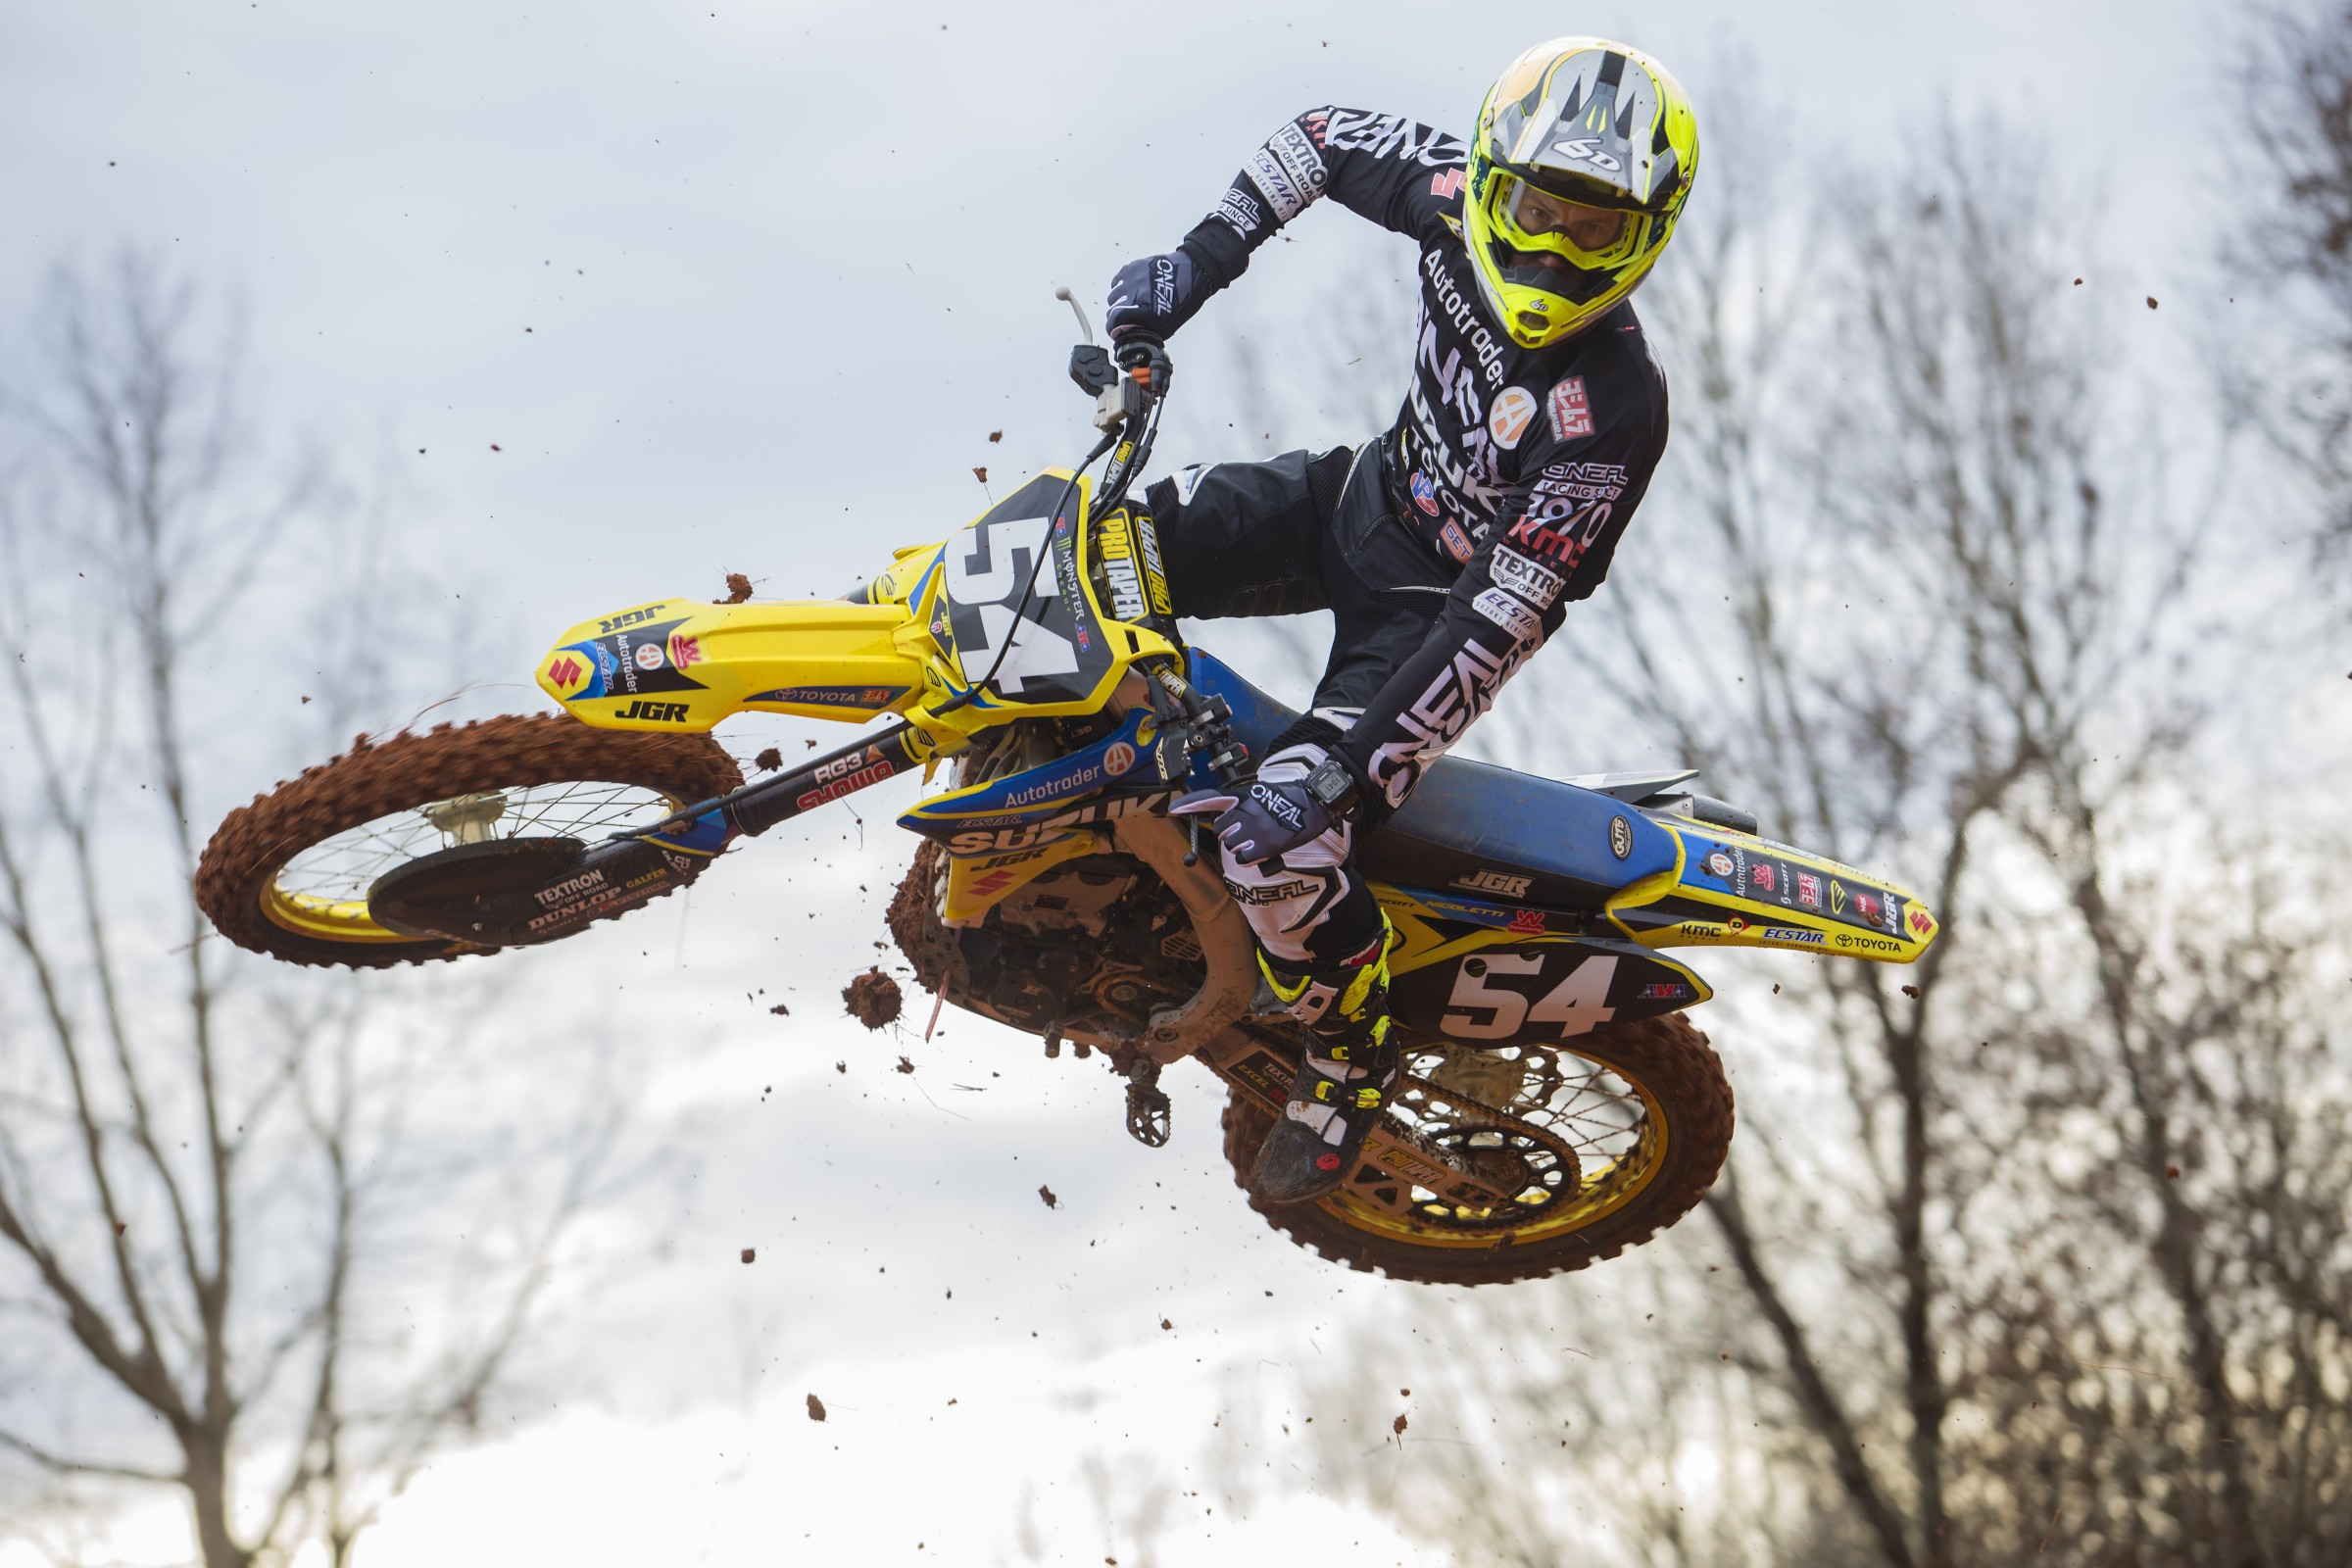 Nicoletti will be filling in for Justin Bogle in the 450 Class.